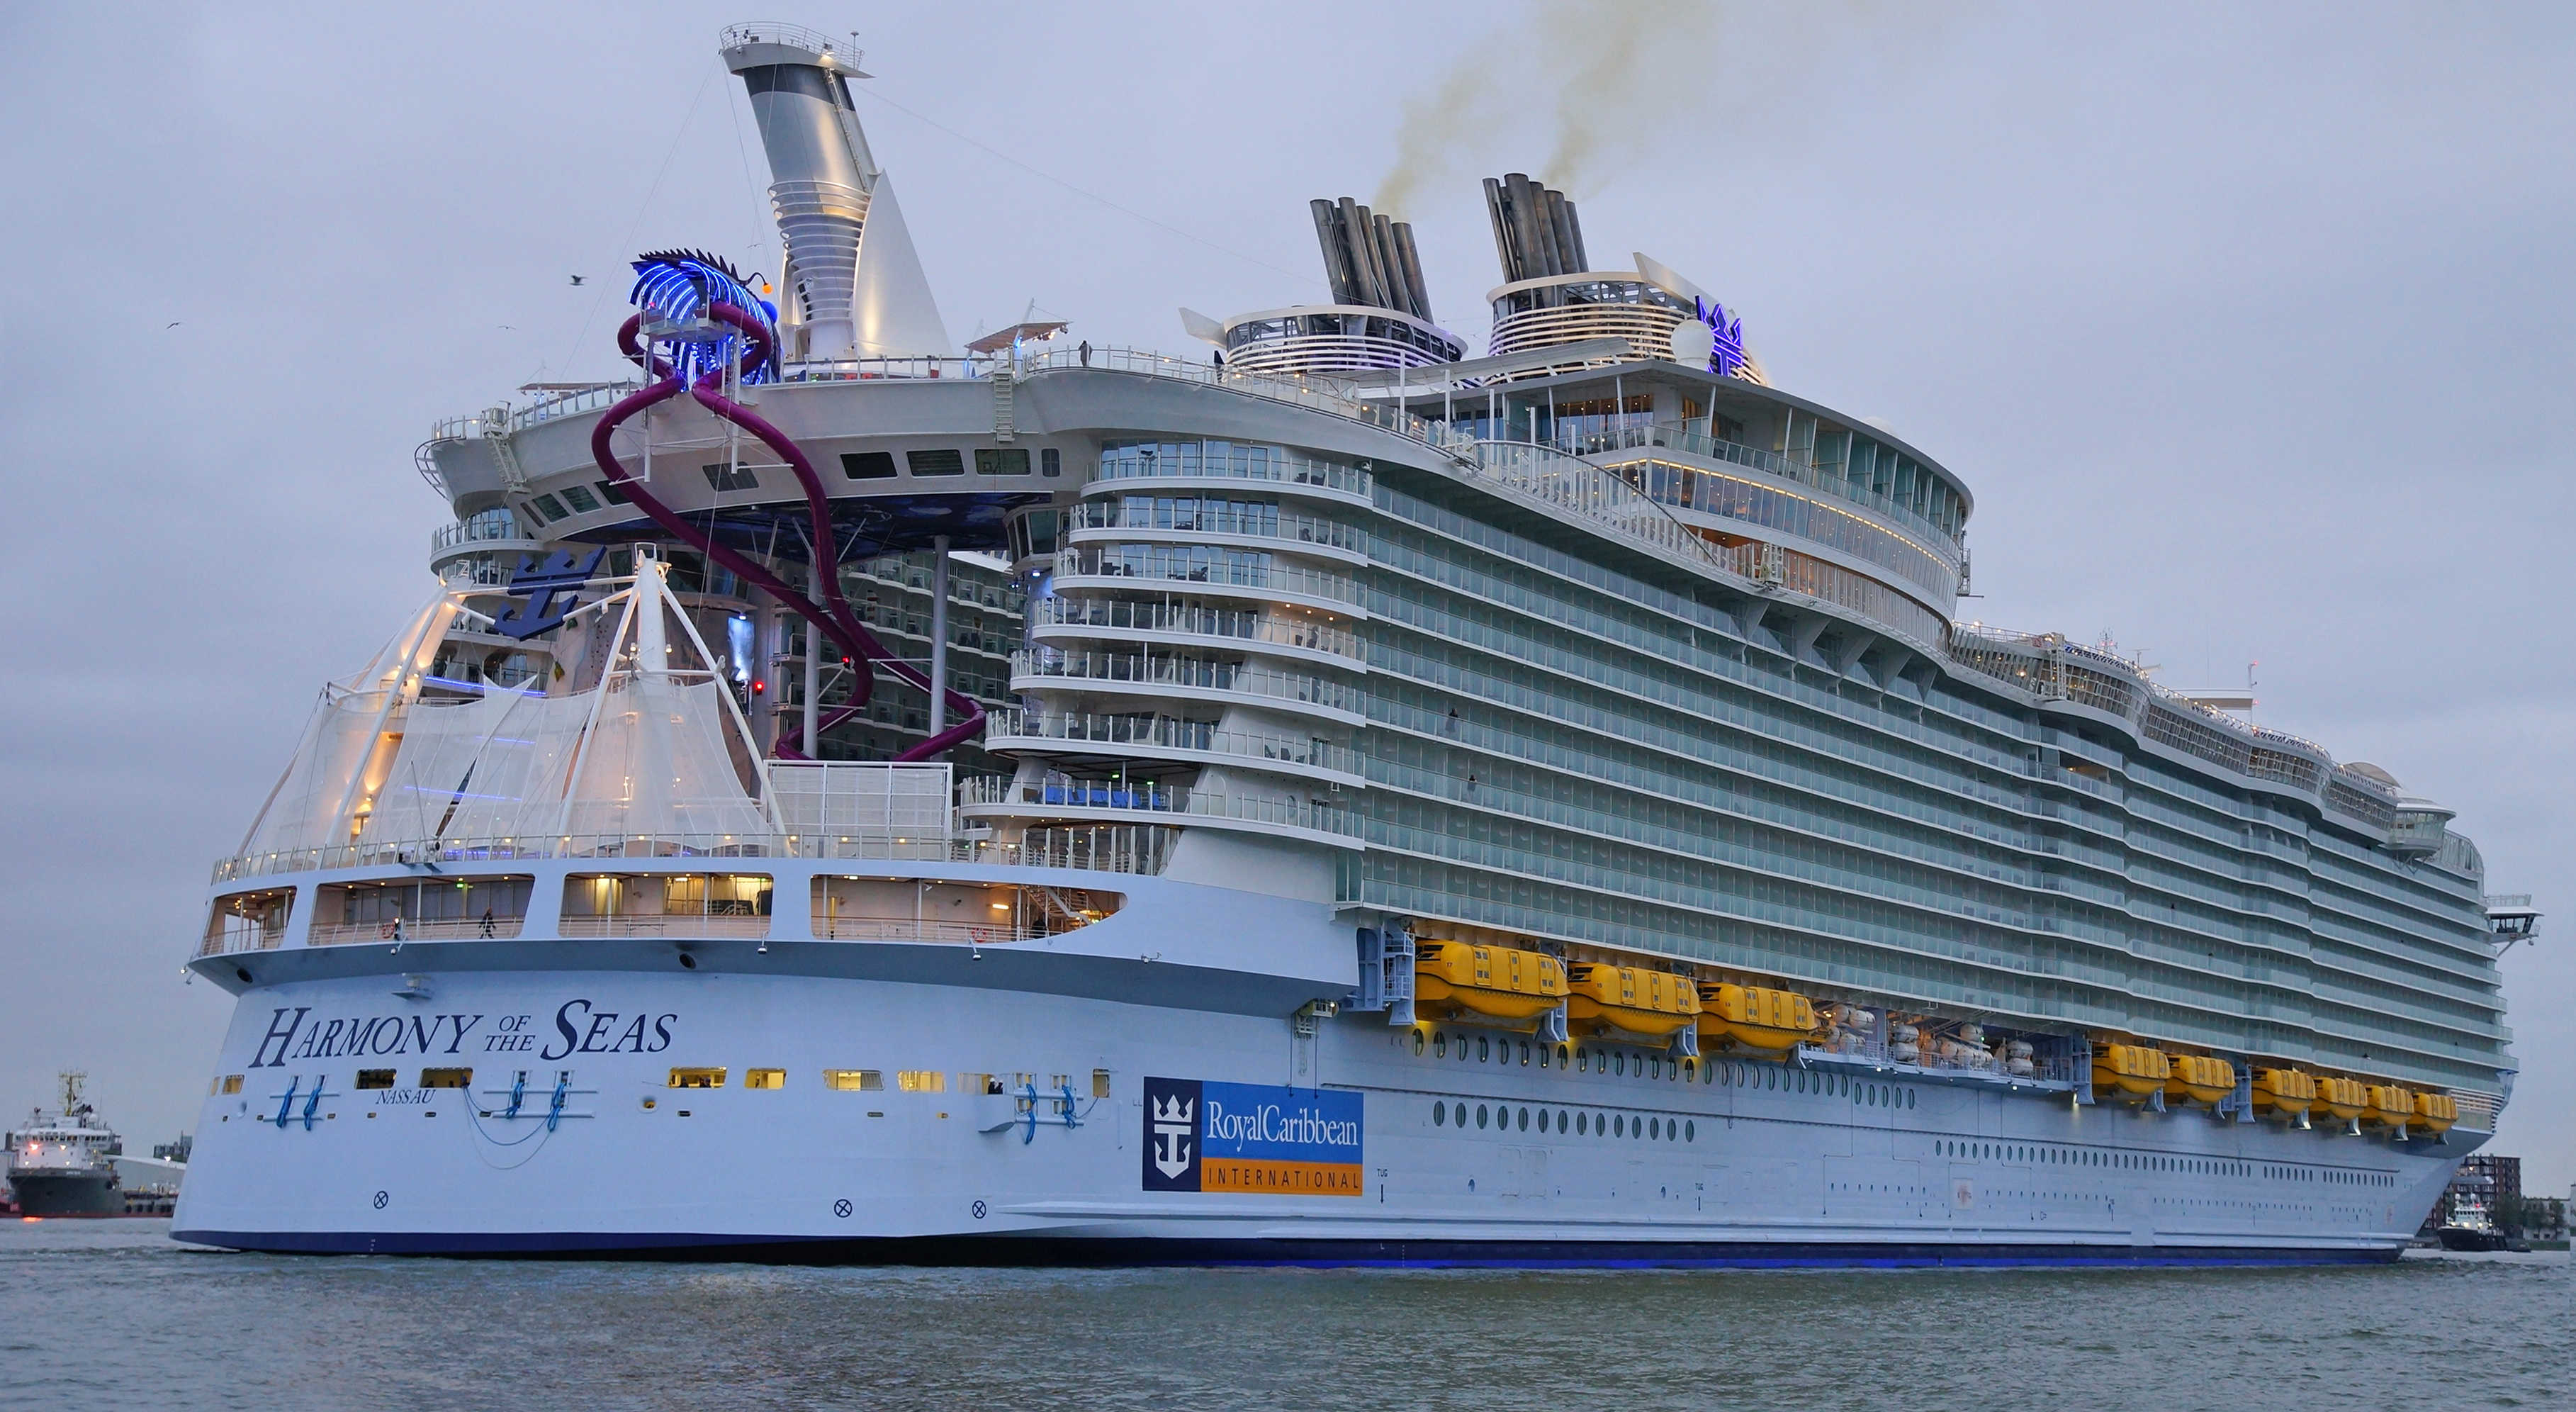 Harmony of the Seas - the largest liner in the world